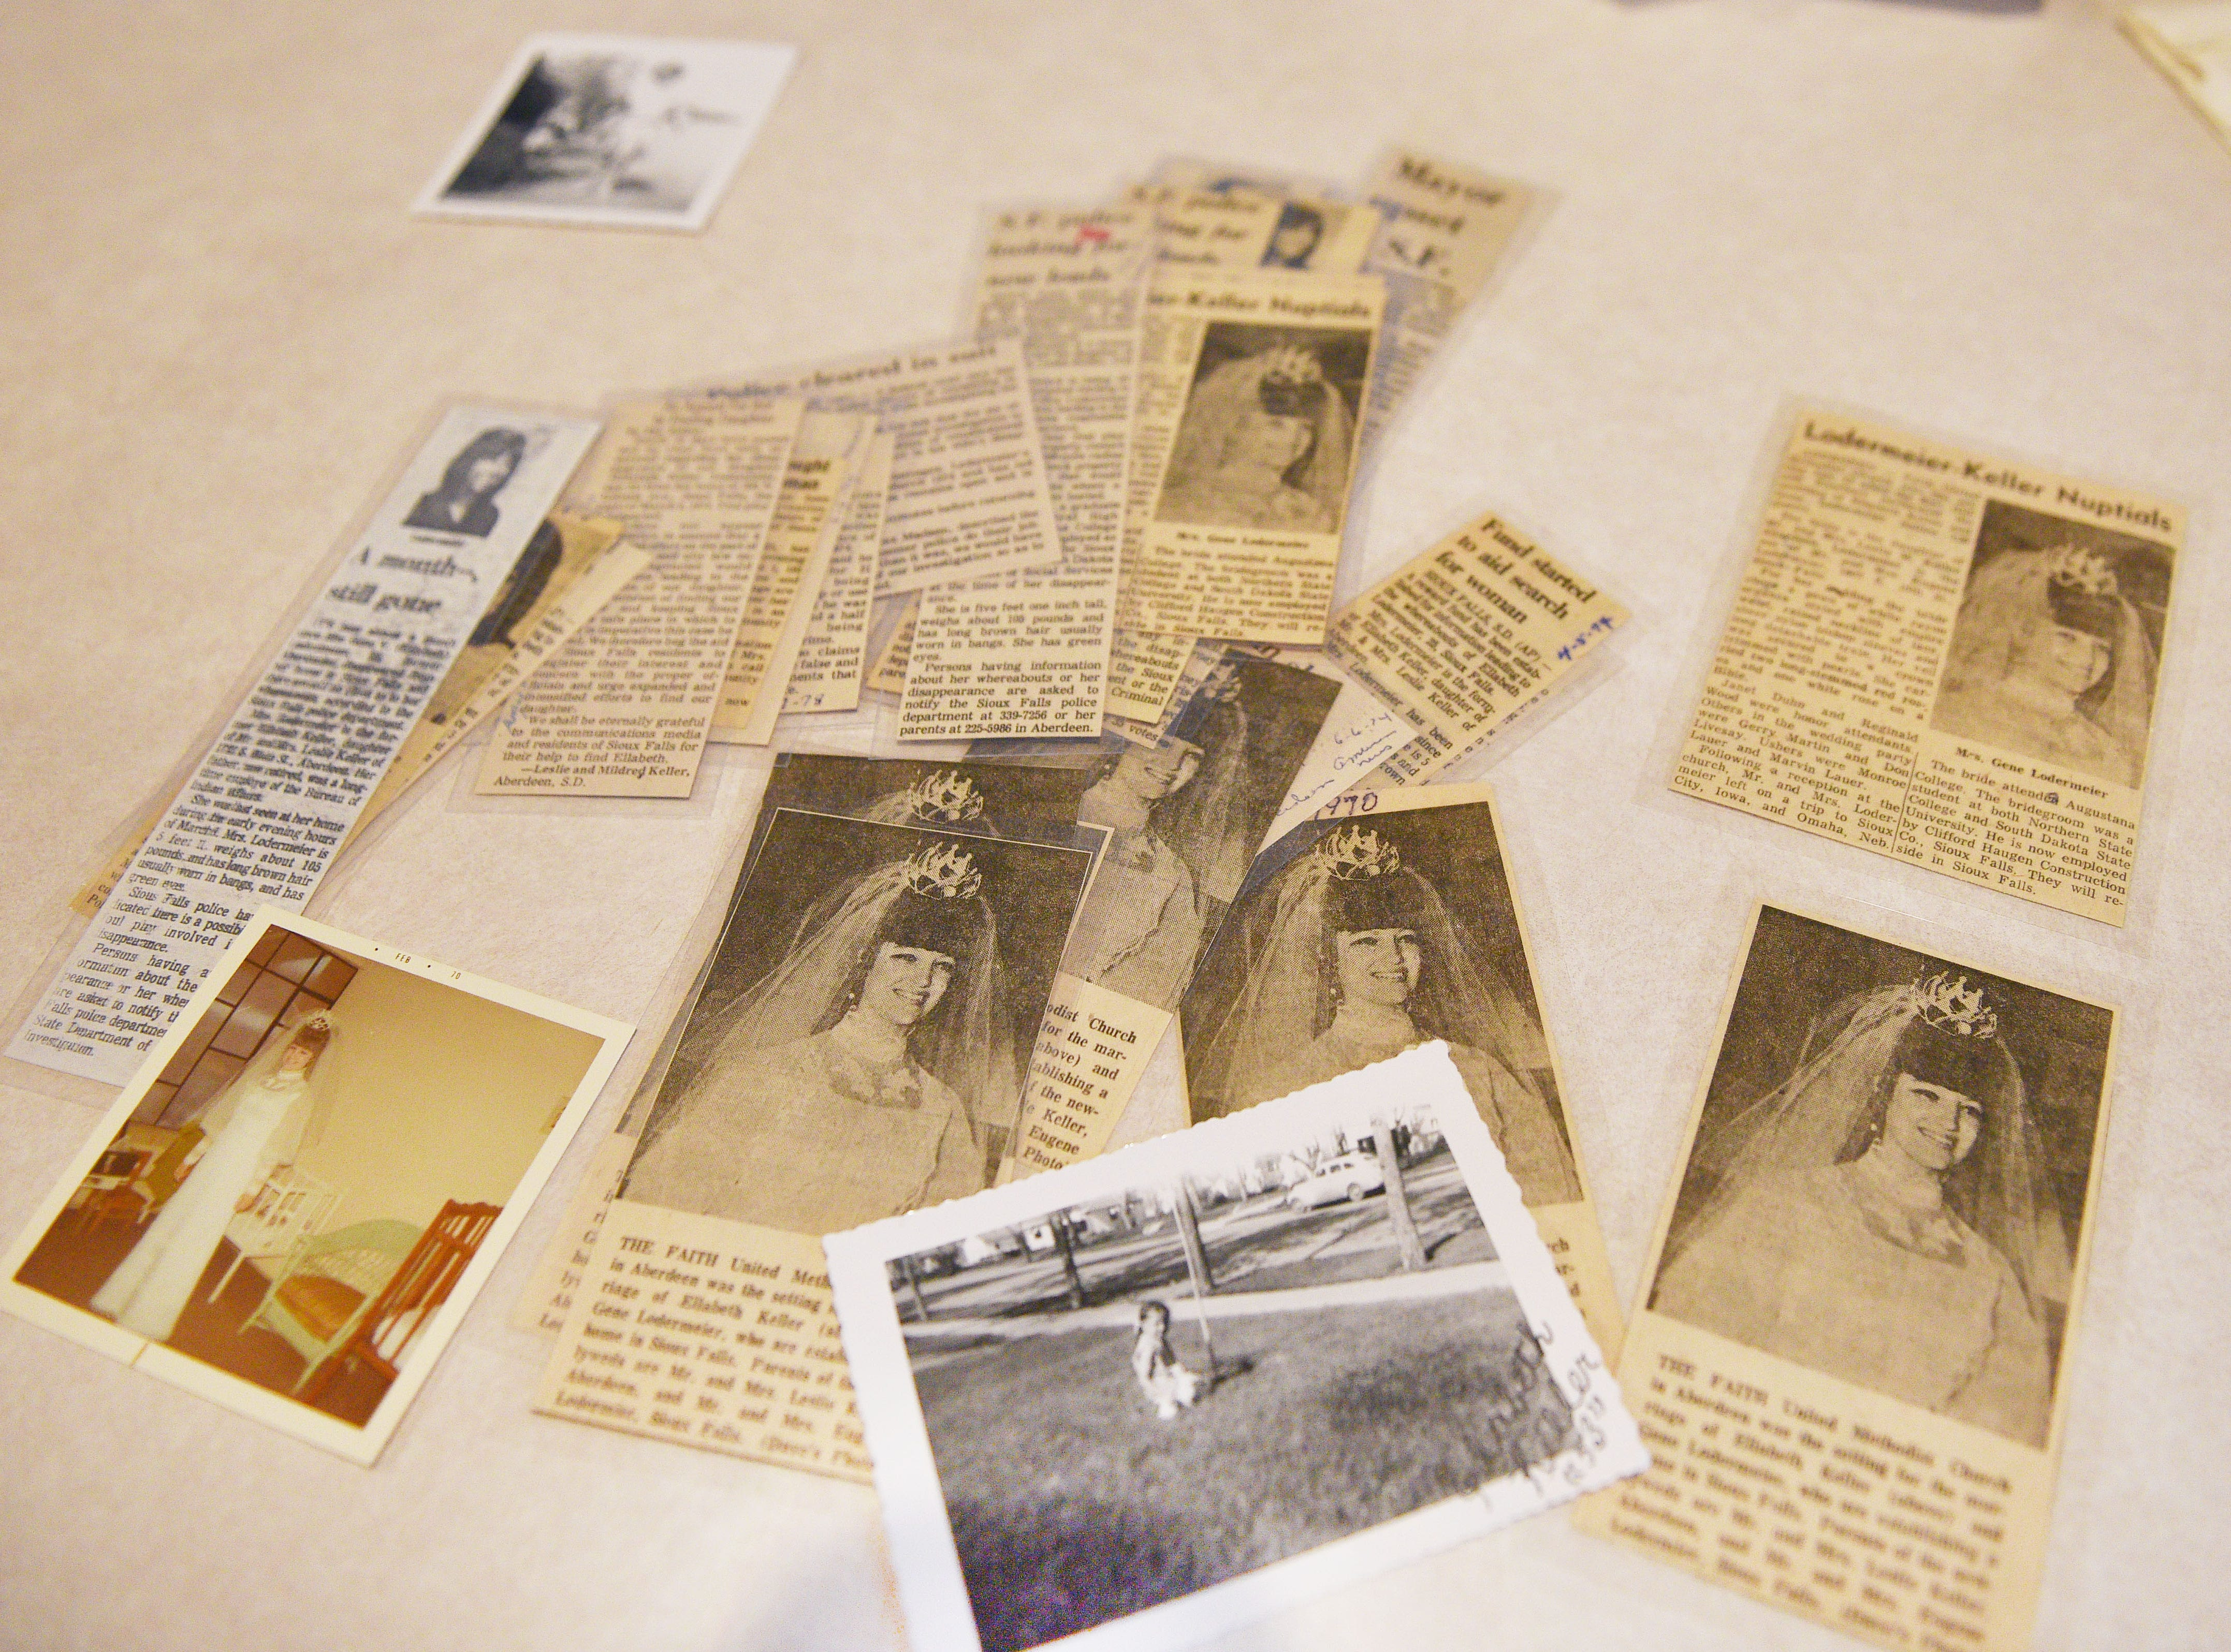 Elizabeth Crow, Ellabeth Lodermeier's niece, shows old newspaper clippings her grandpa saved about her aunt Friday, Dec. 6, at her home in Sioux Falls. Crow was 7 years old when Ellabeth disappeared in 1974. Elizabeth's mom, Sandra Herman, never stopped trying to get answers to her sister's disappearance.